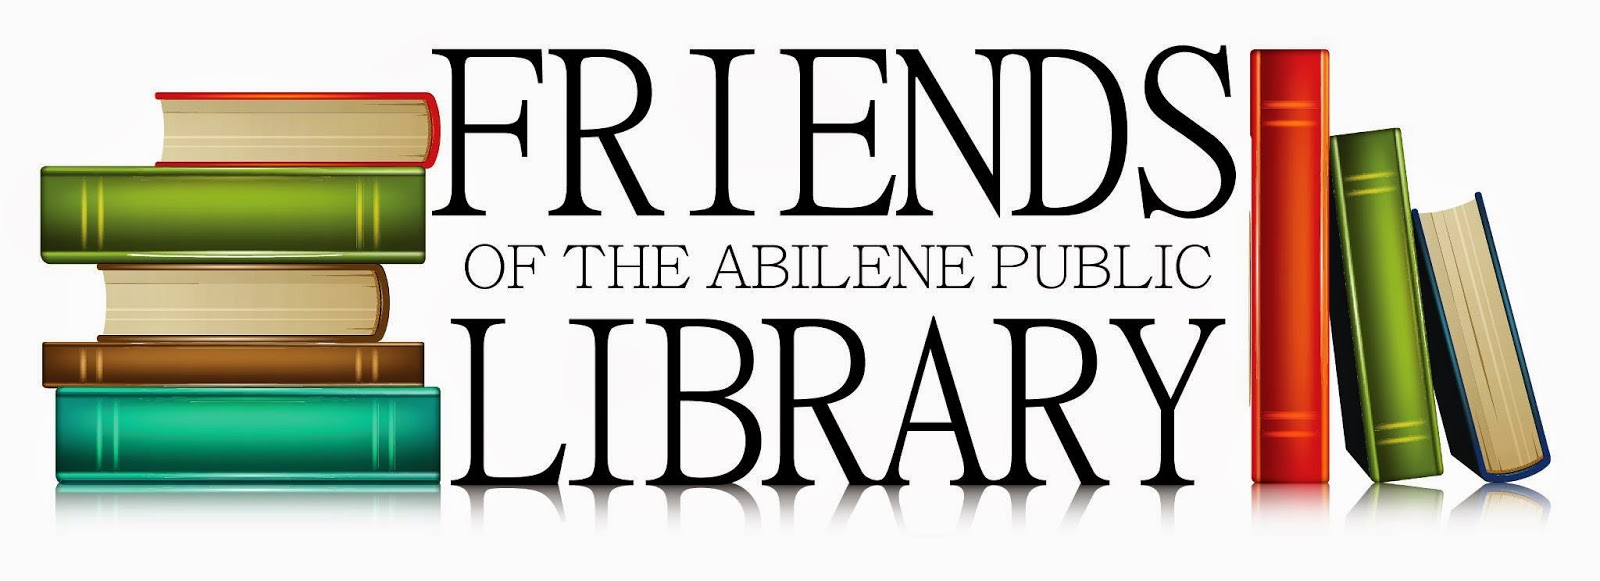 The Friends Of The Abilene Public Library Are Gearing Up To Host One Of  Their Most Wellattended Events Of The Yeare Annual Book Sale!!!